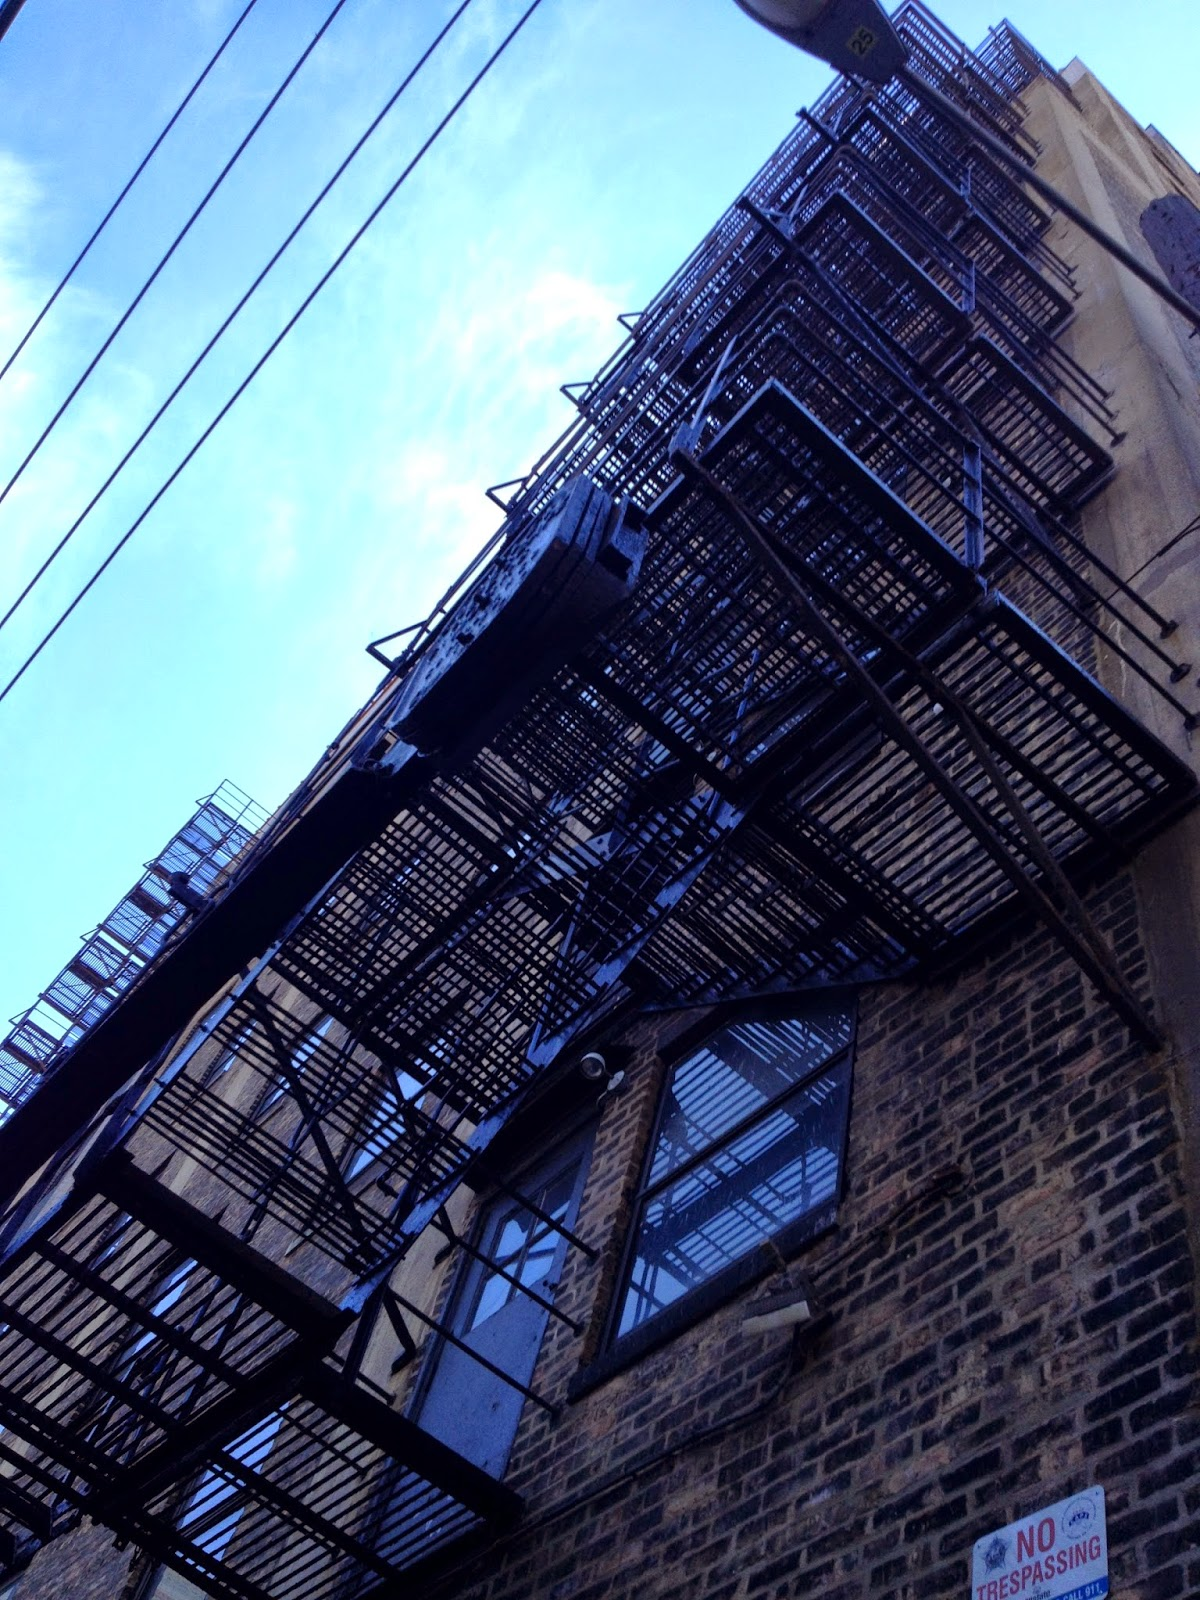 Chicago Uptown alley fire escape